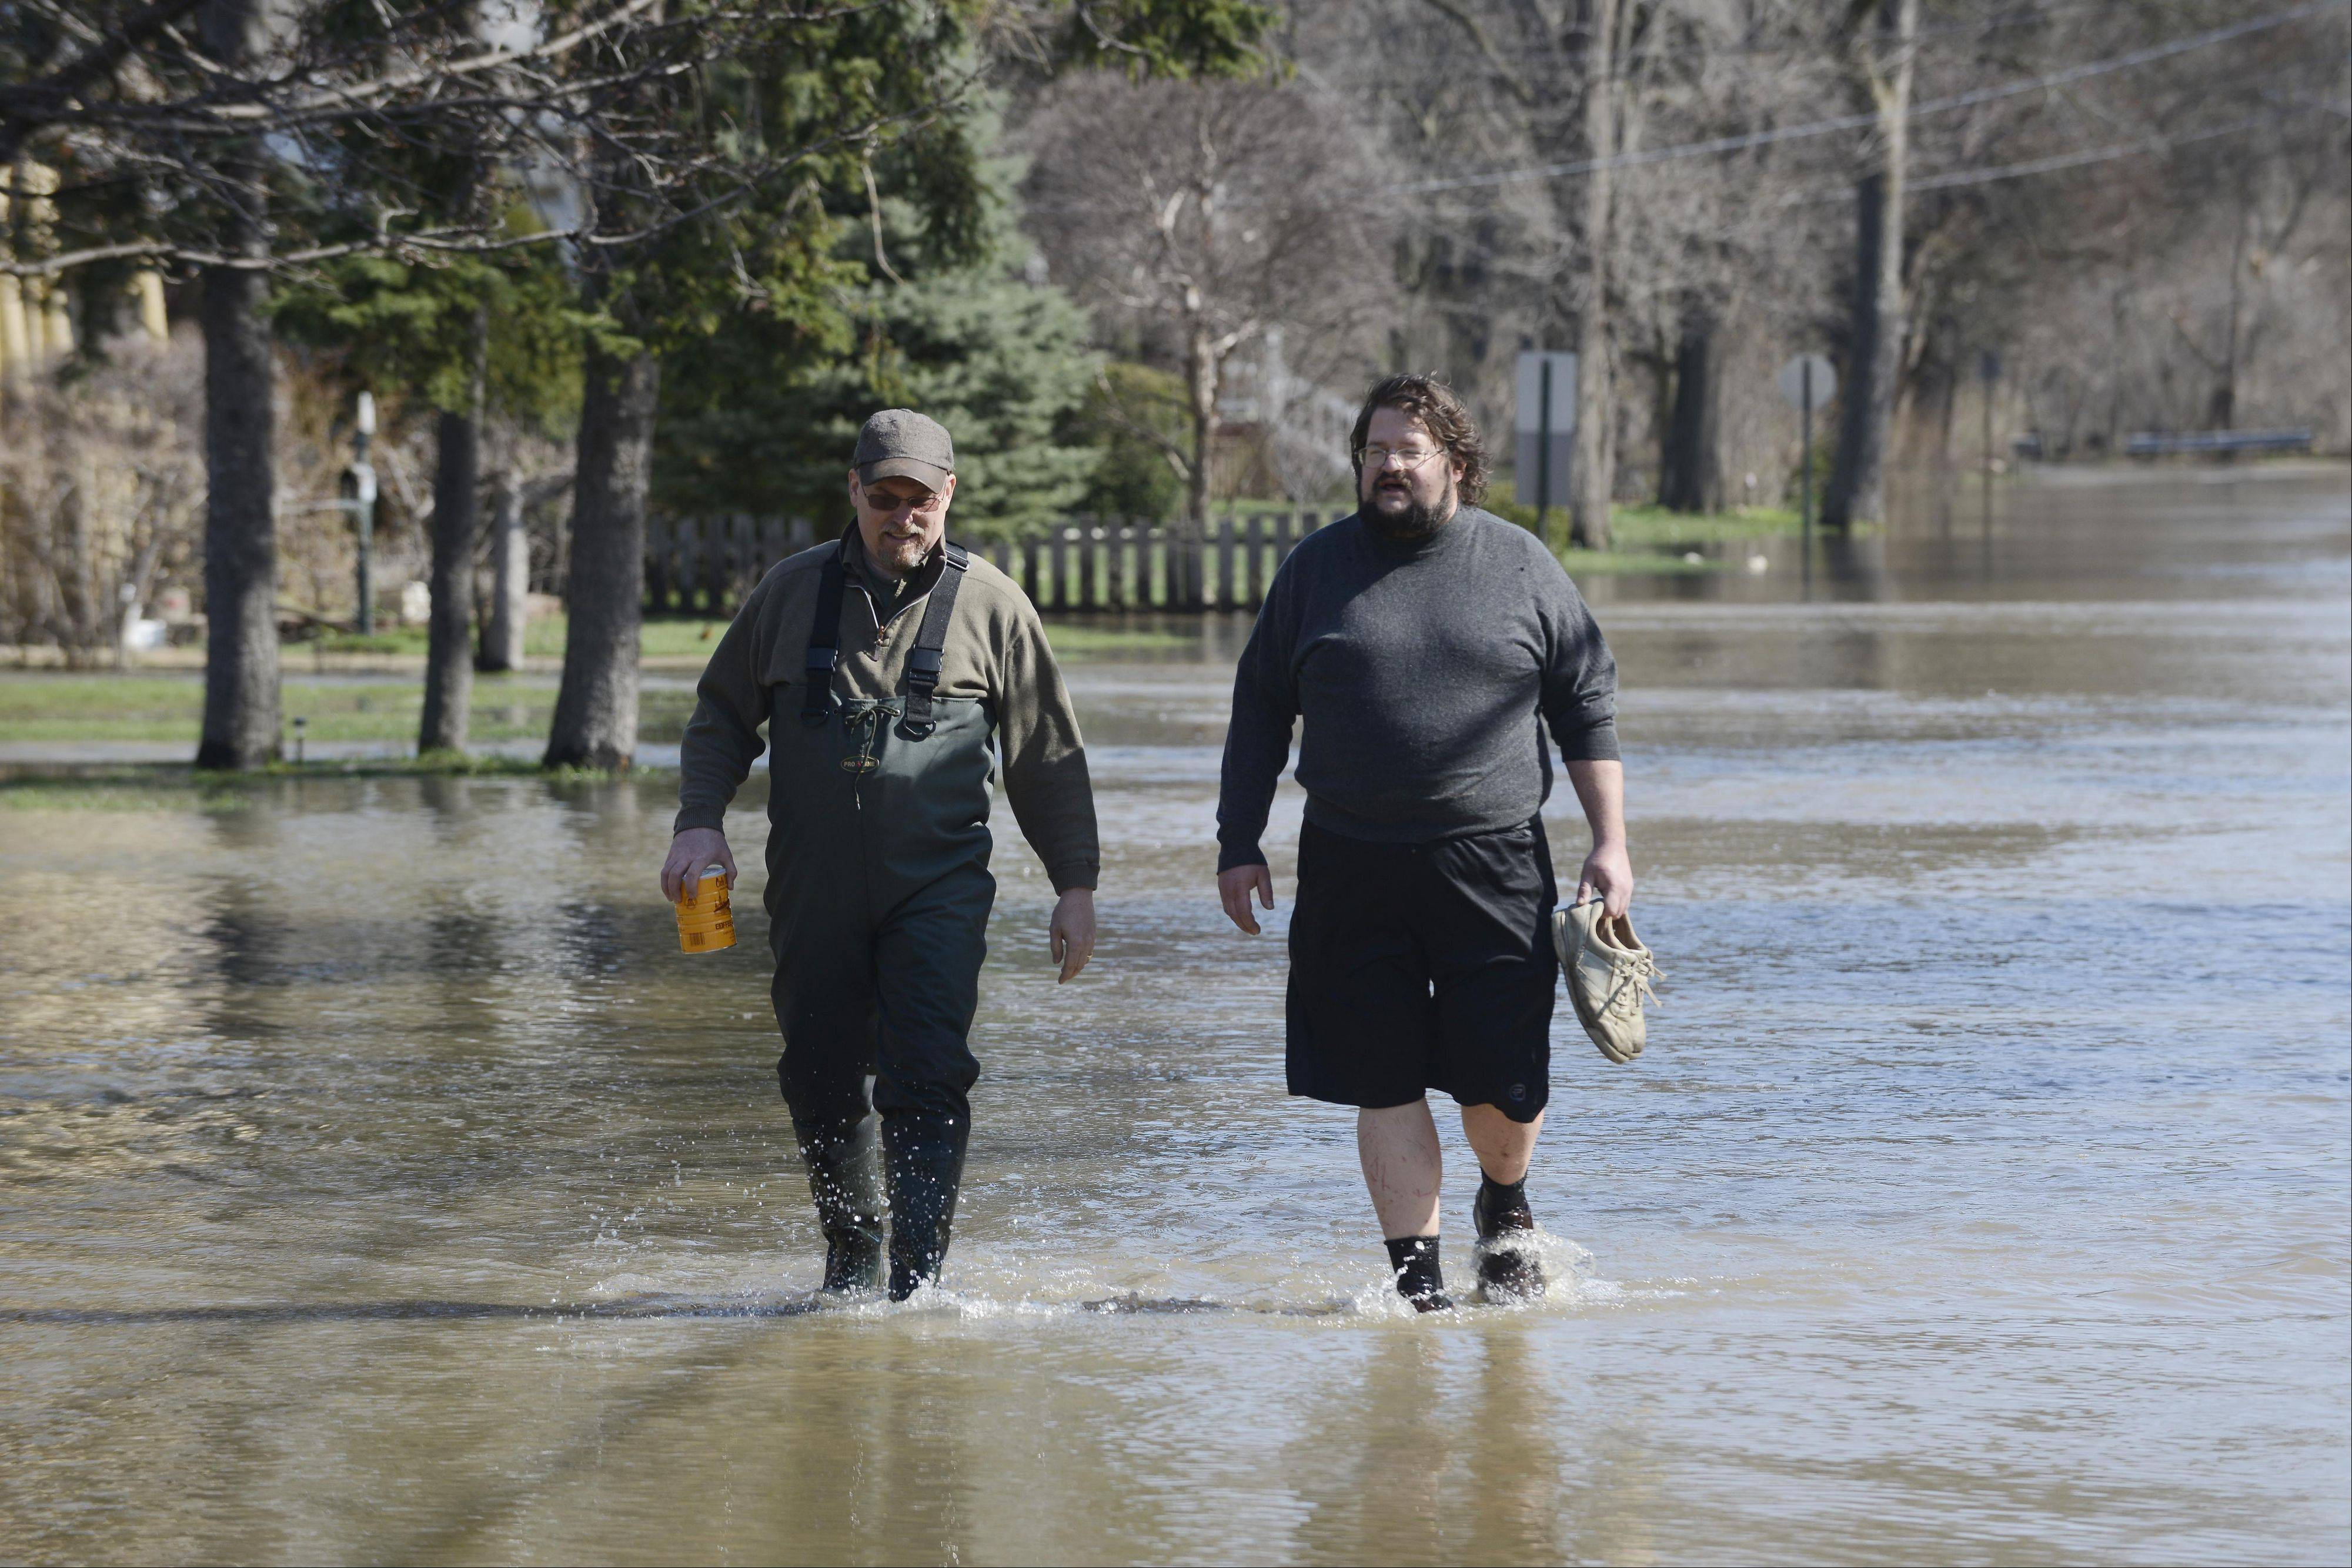 Kerry Chambers, left, and Andrij Karpenko walk along Hawthorne Lane as flooding from the Des Plaines River continues to recede from the Big Bend area in Des Plaines yesterday.